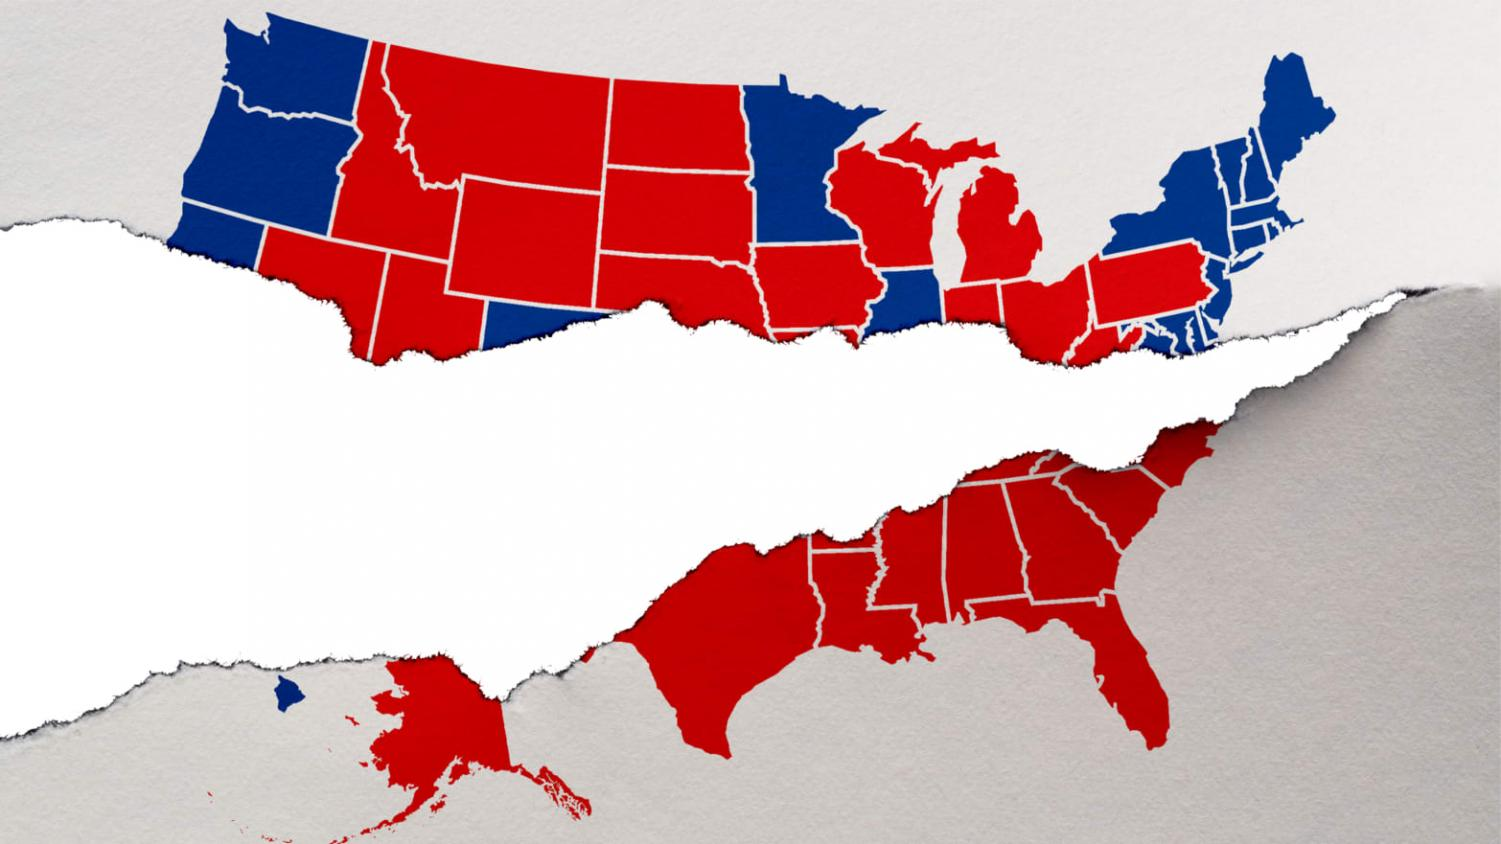 electoral college meaning